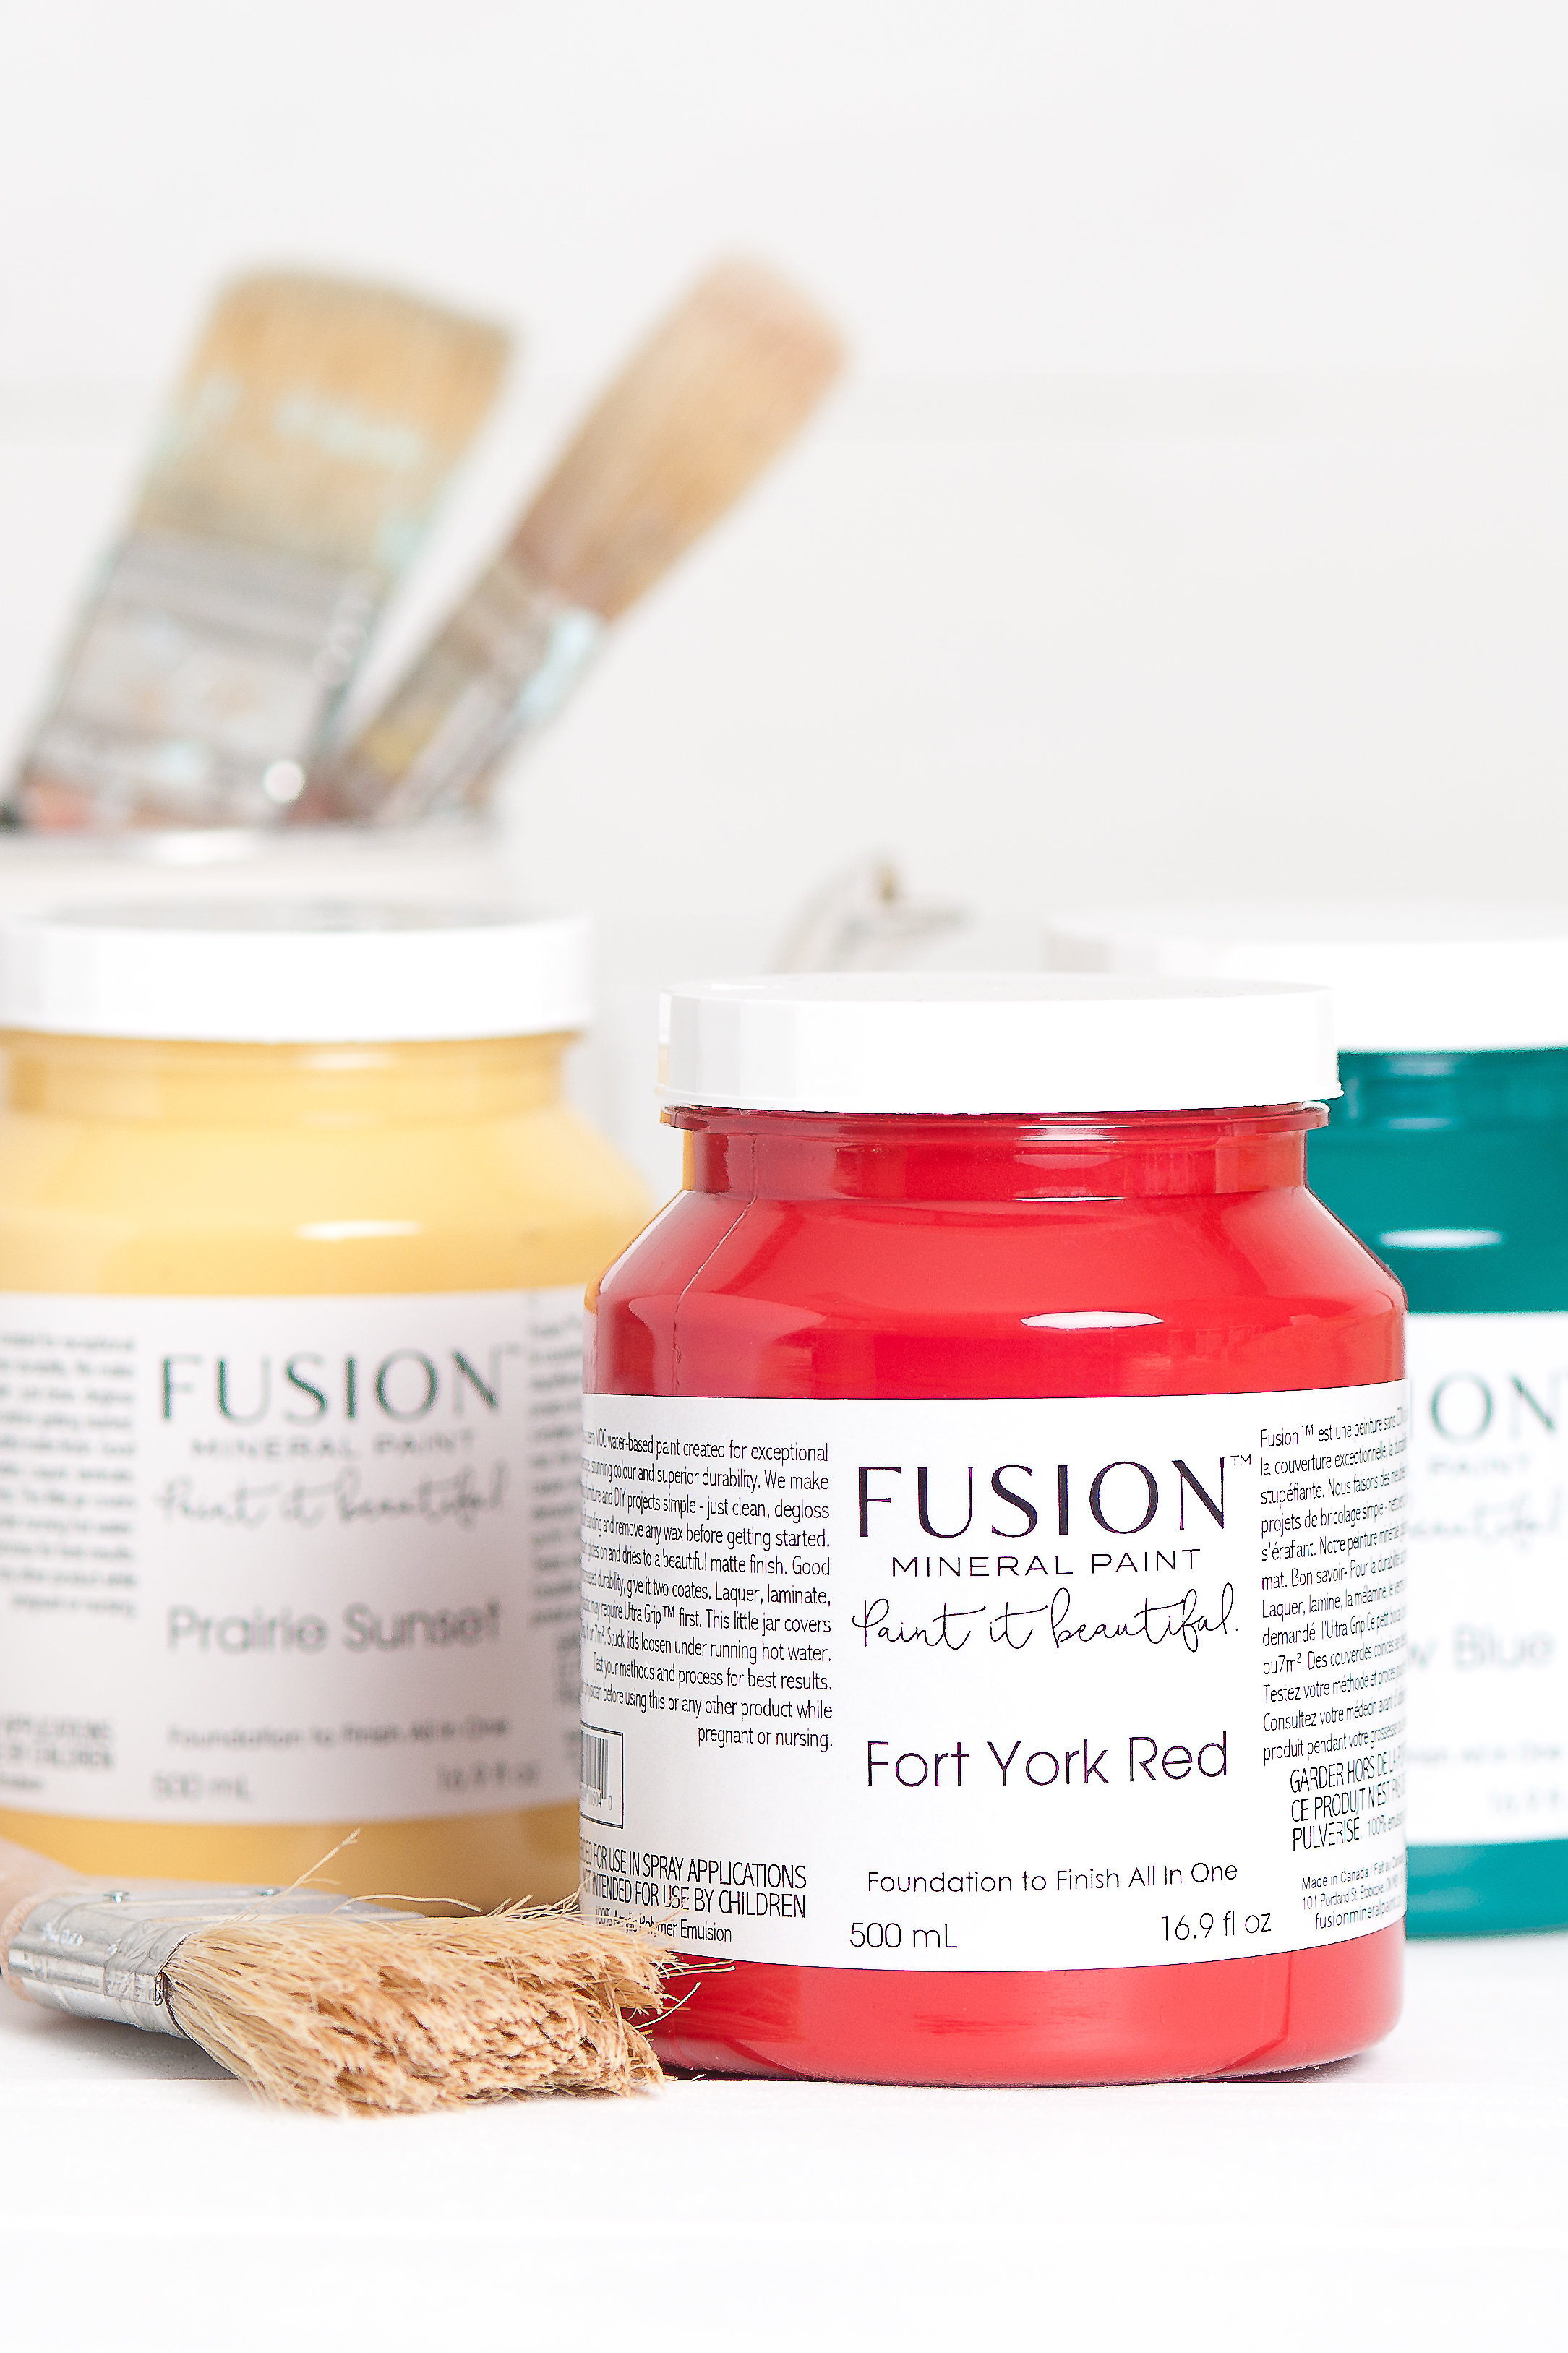 Fusion Mineral Paint     With over 50 beautiful colors to choose from, we have it all whether your project is big or small we have you covered.   Zero VOC  Minimal prep work  Easy application  Exceptional coverage  Gorgeous matte finish  No top coat required